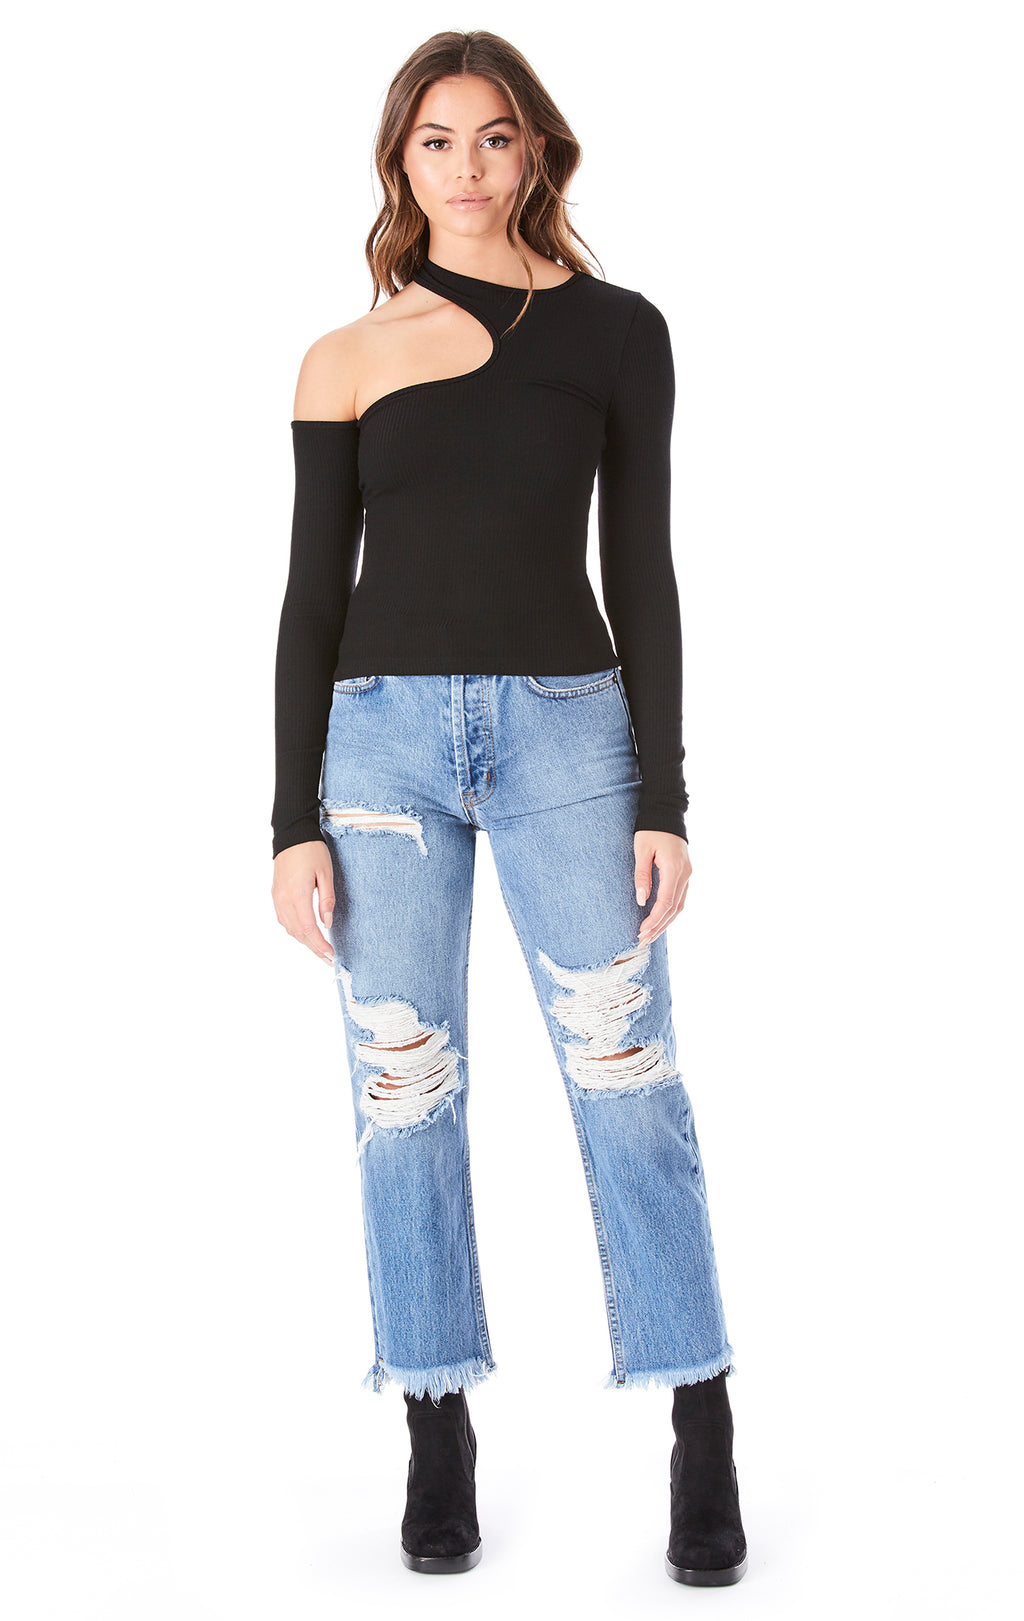 ONE SHOULDER CUT OUT LONG SLEEVE TOP